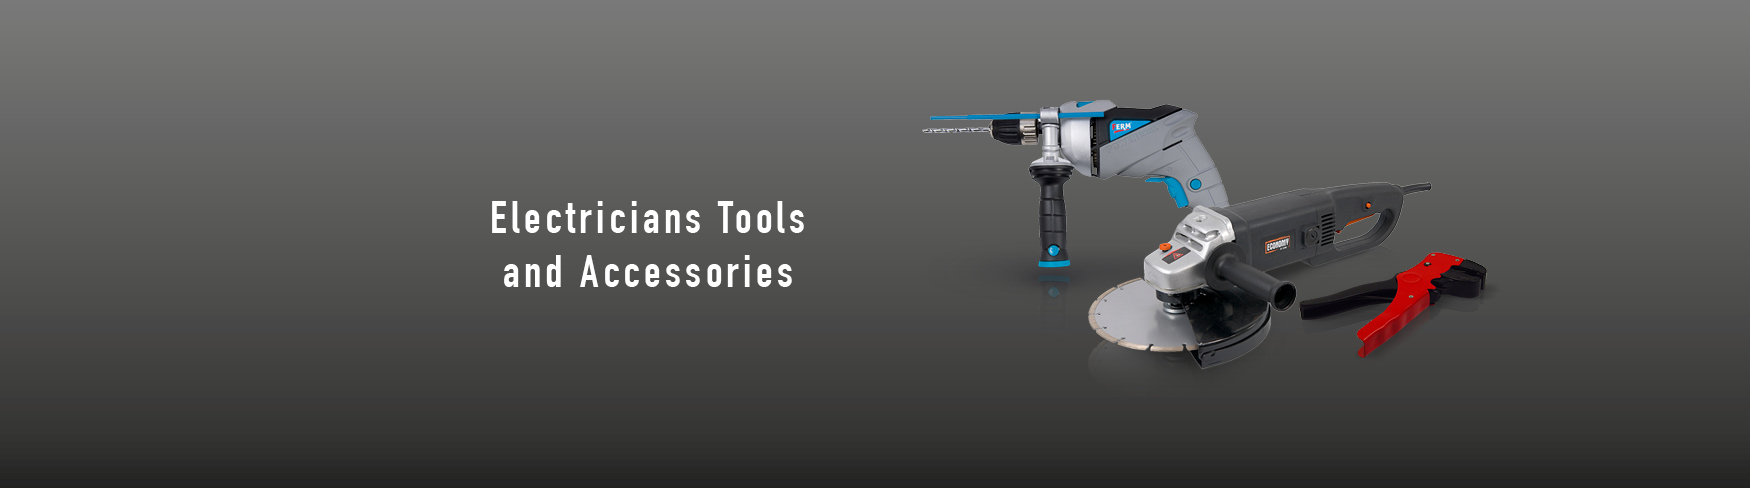 Electricians Tools and Accessories